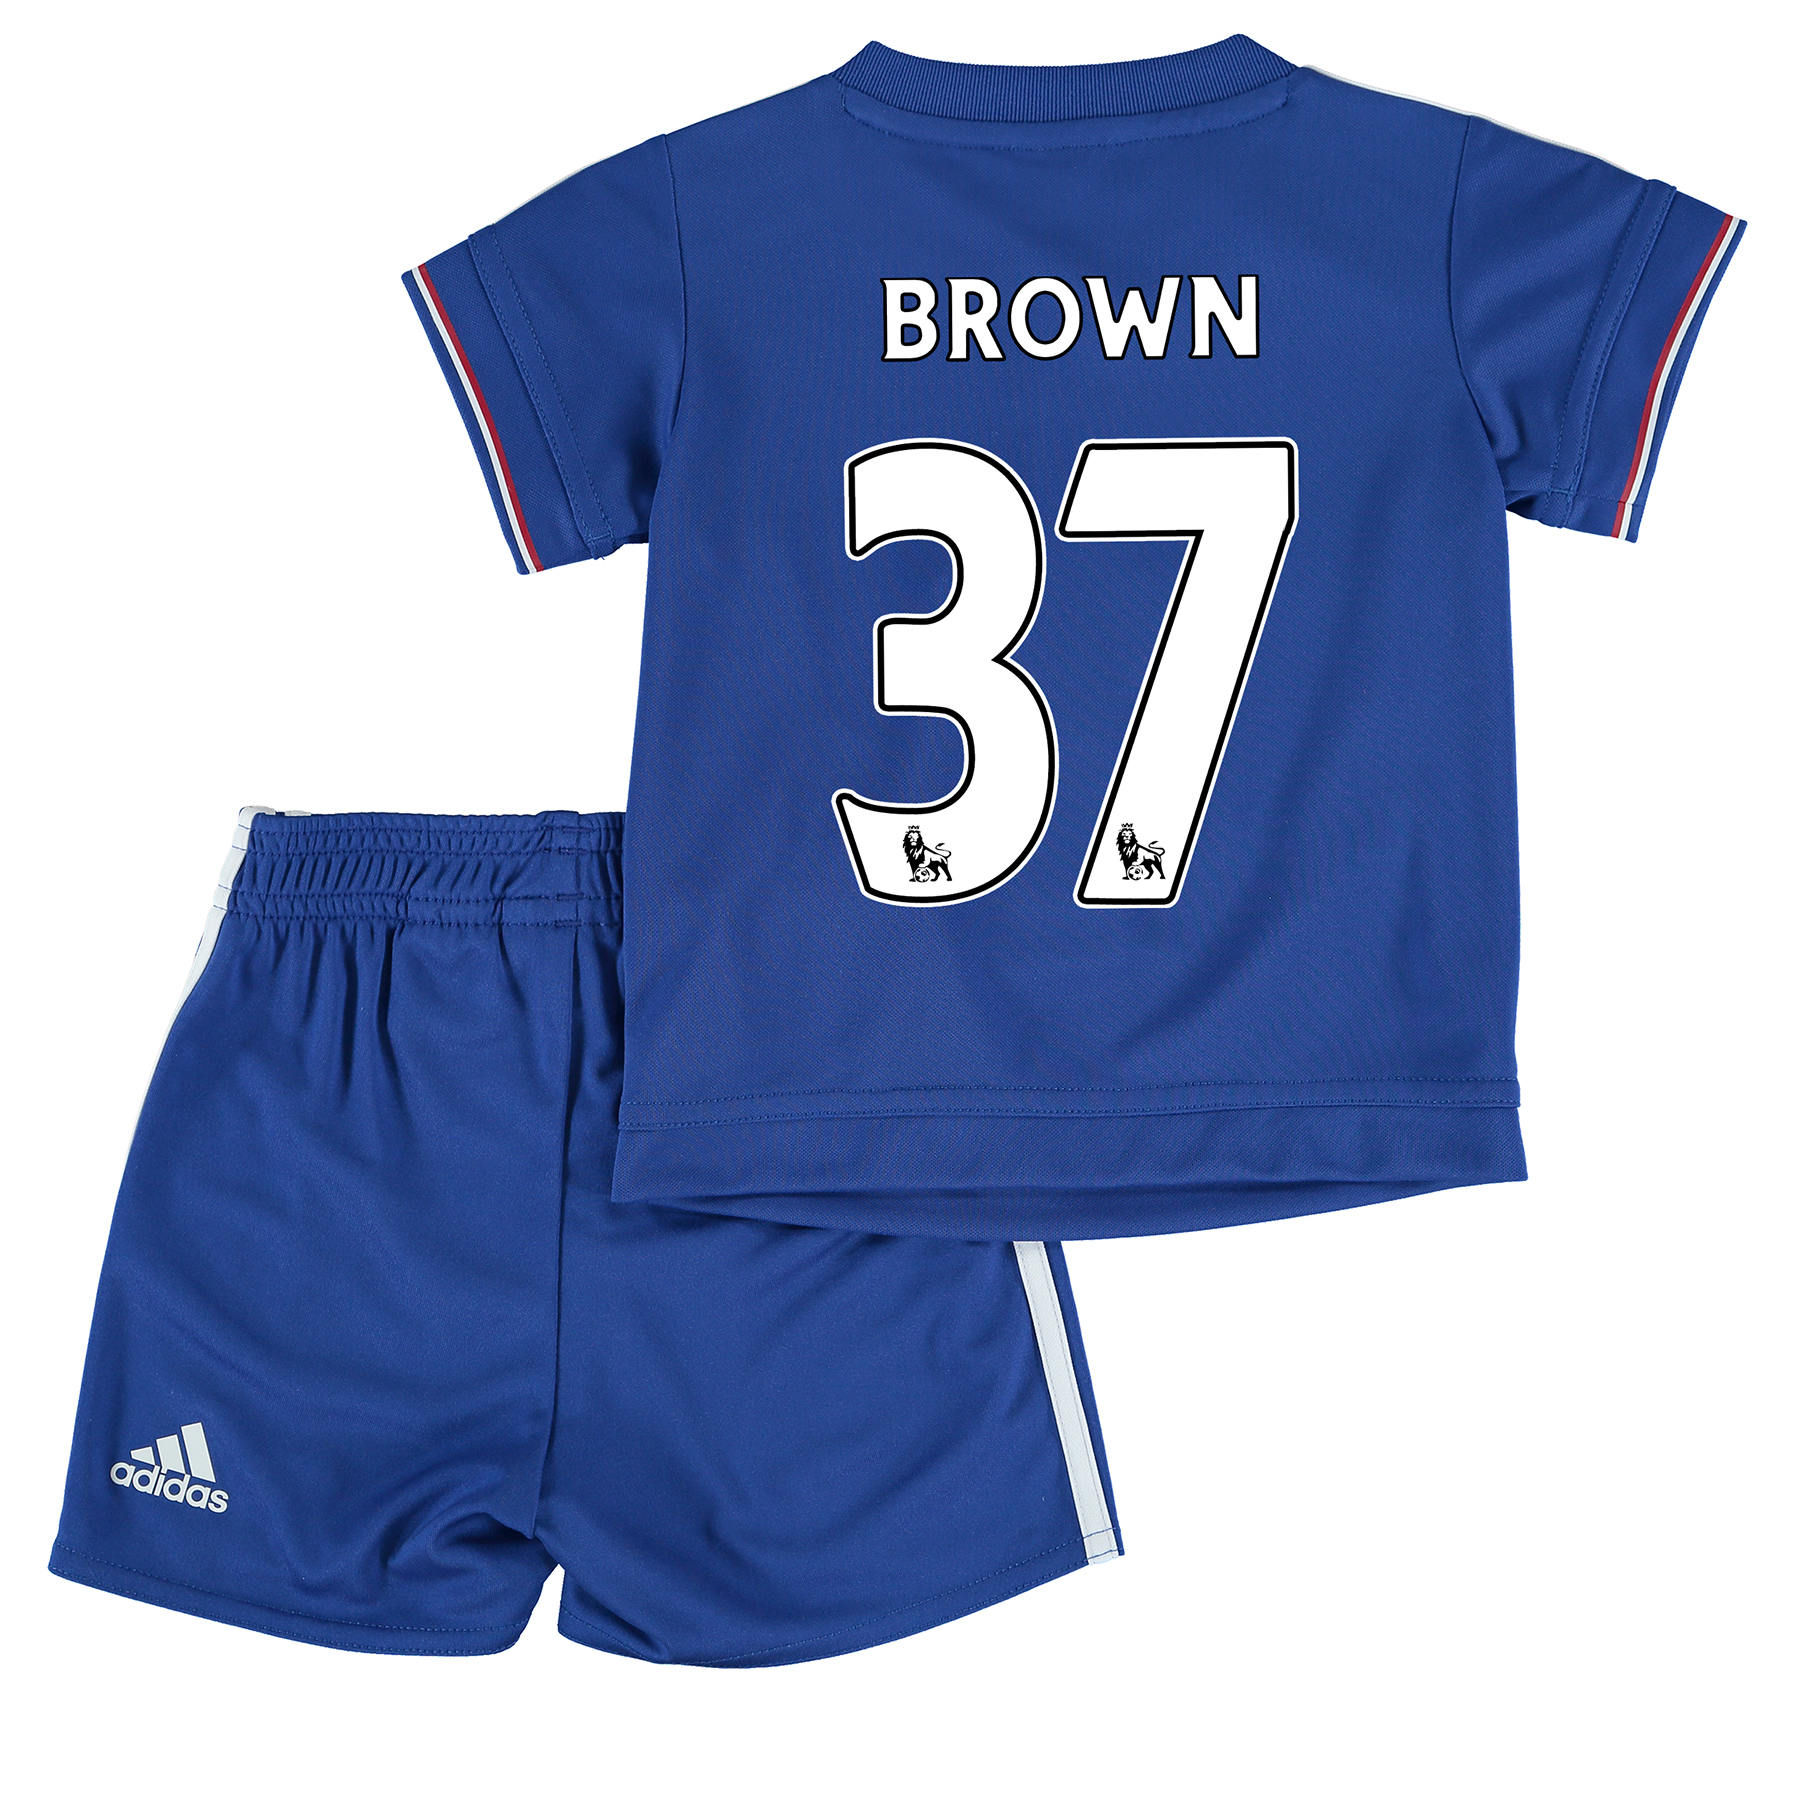 Chelsea Home Mini Kit 2015/16 Blue with Brown 37 printing